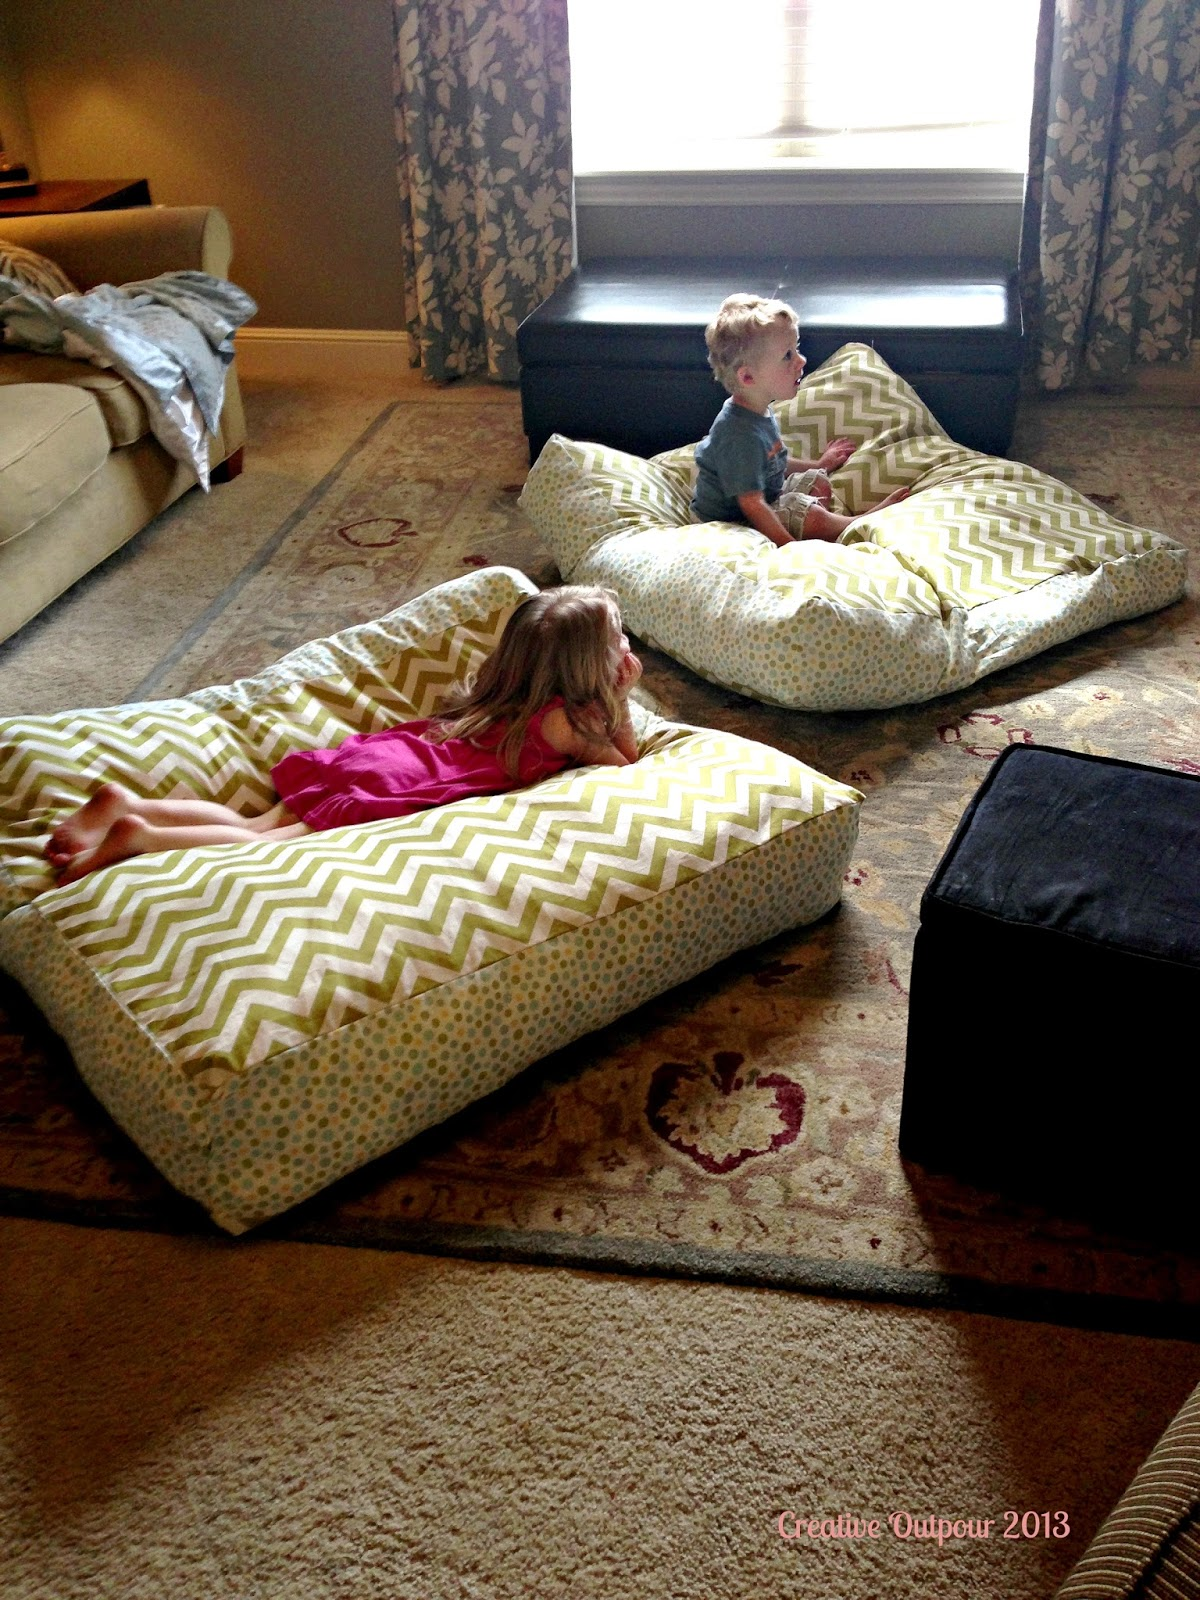 How To Make A Giant Floor Pillow : Floor Pillows Completed! - Creative Outpour